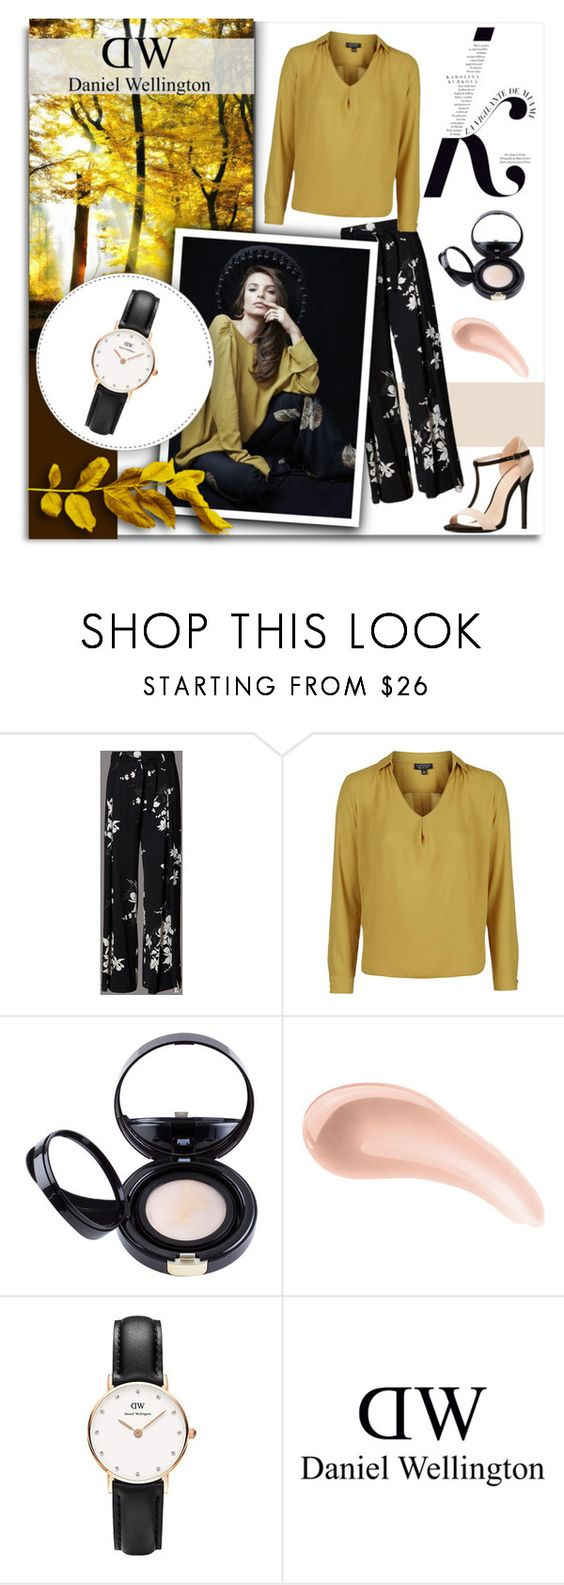 """""""Classy Sheffield 26mm (Promo Code inside)"""" by melissa-de-souza ❤ liked on Polyvore featuring Topshop, KAROLINA, Kevyn Aucoin, NARS Cosmetics, Daniel Wellington and Charlotte Russe"""